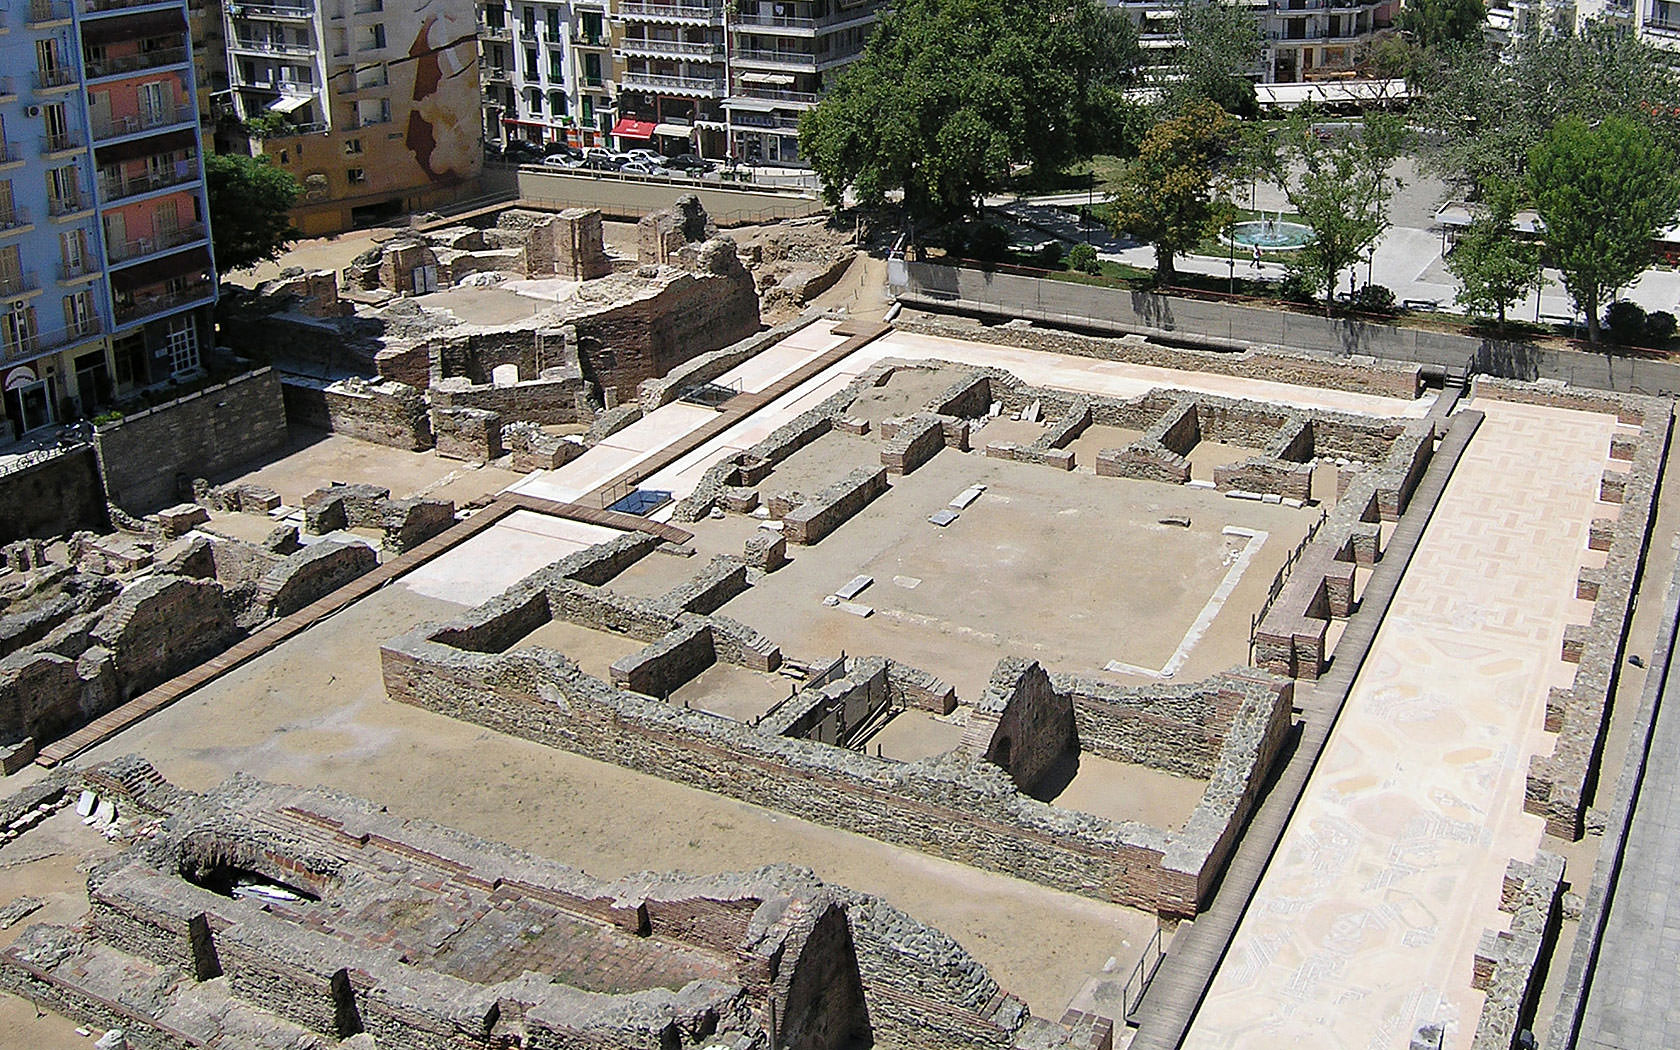 Archaelogical site of Navarinou Square. Palace building remains